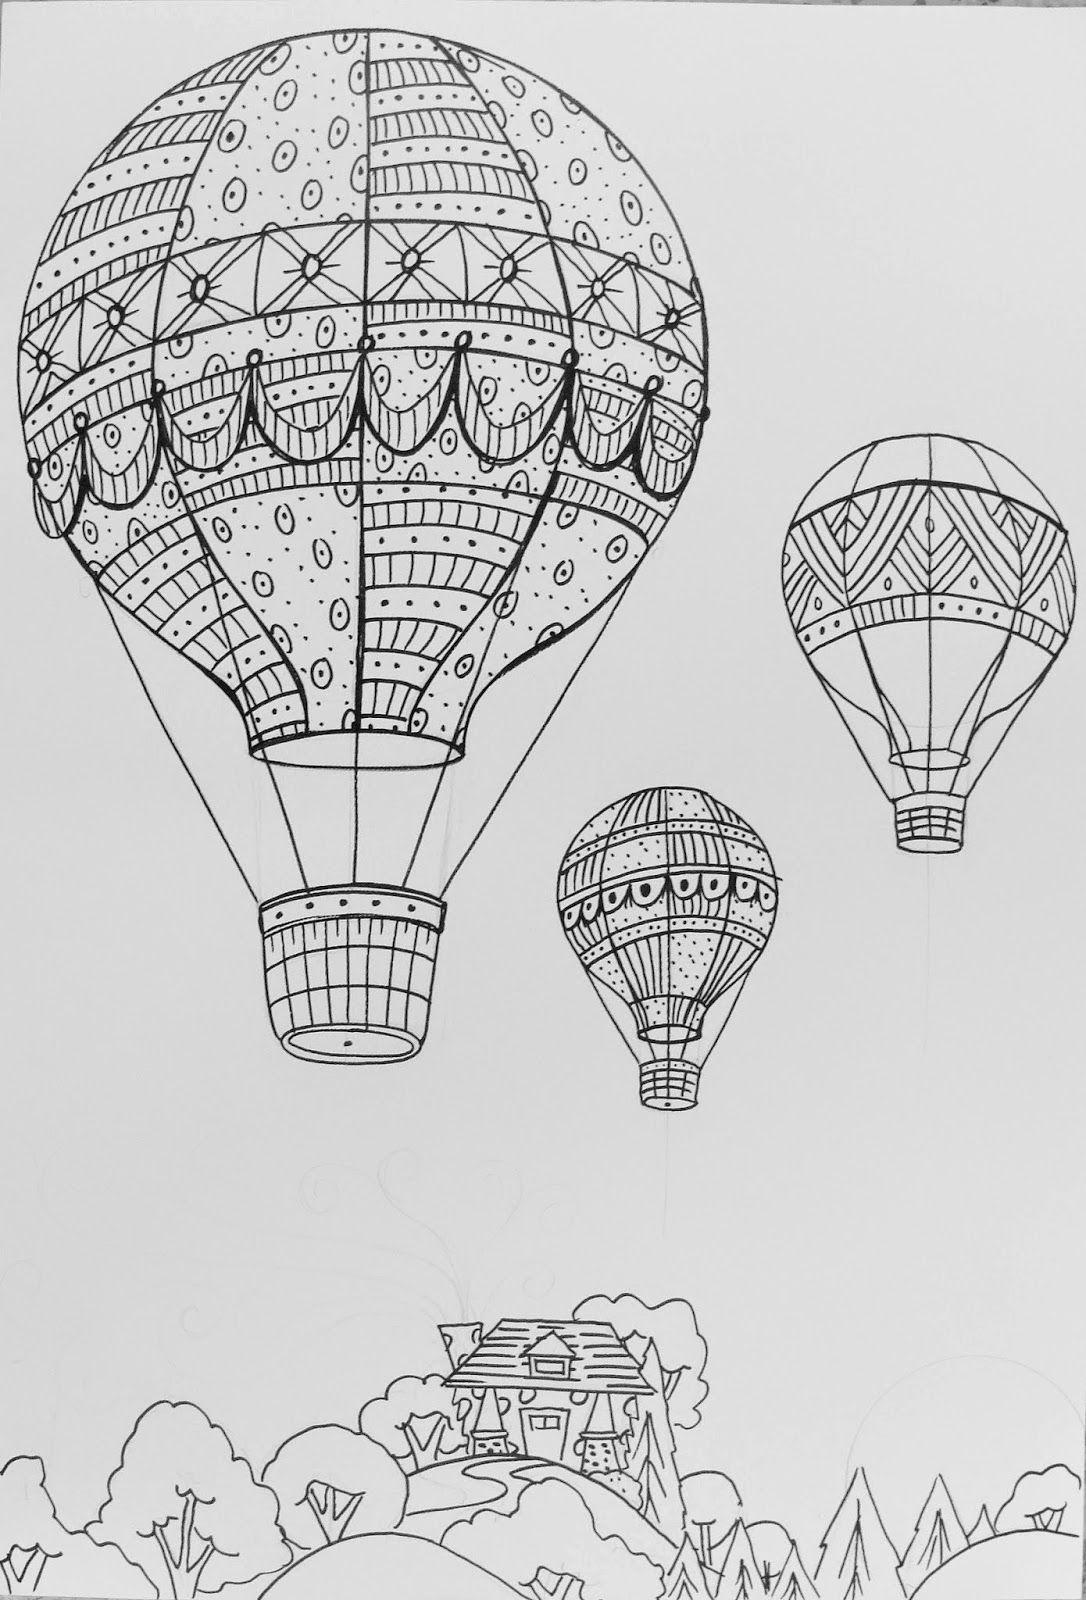 how to draw a air balloon how to draw a hot air balloon step by step drawing balloon air how to a draw